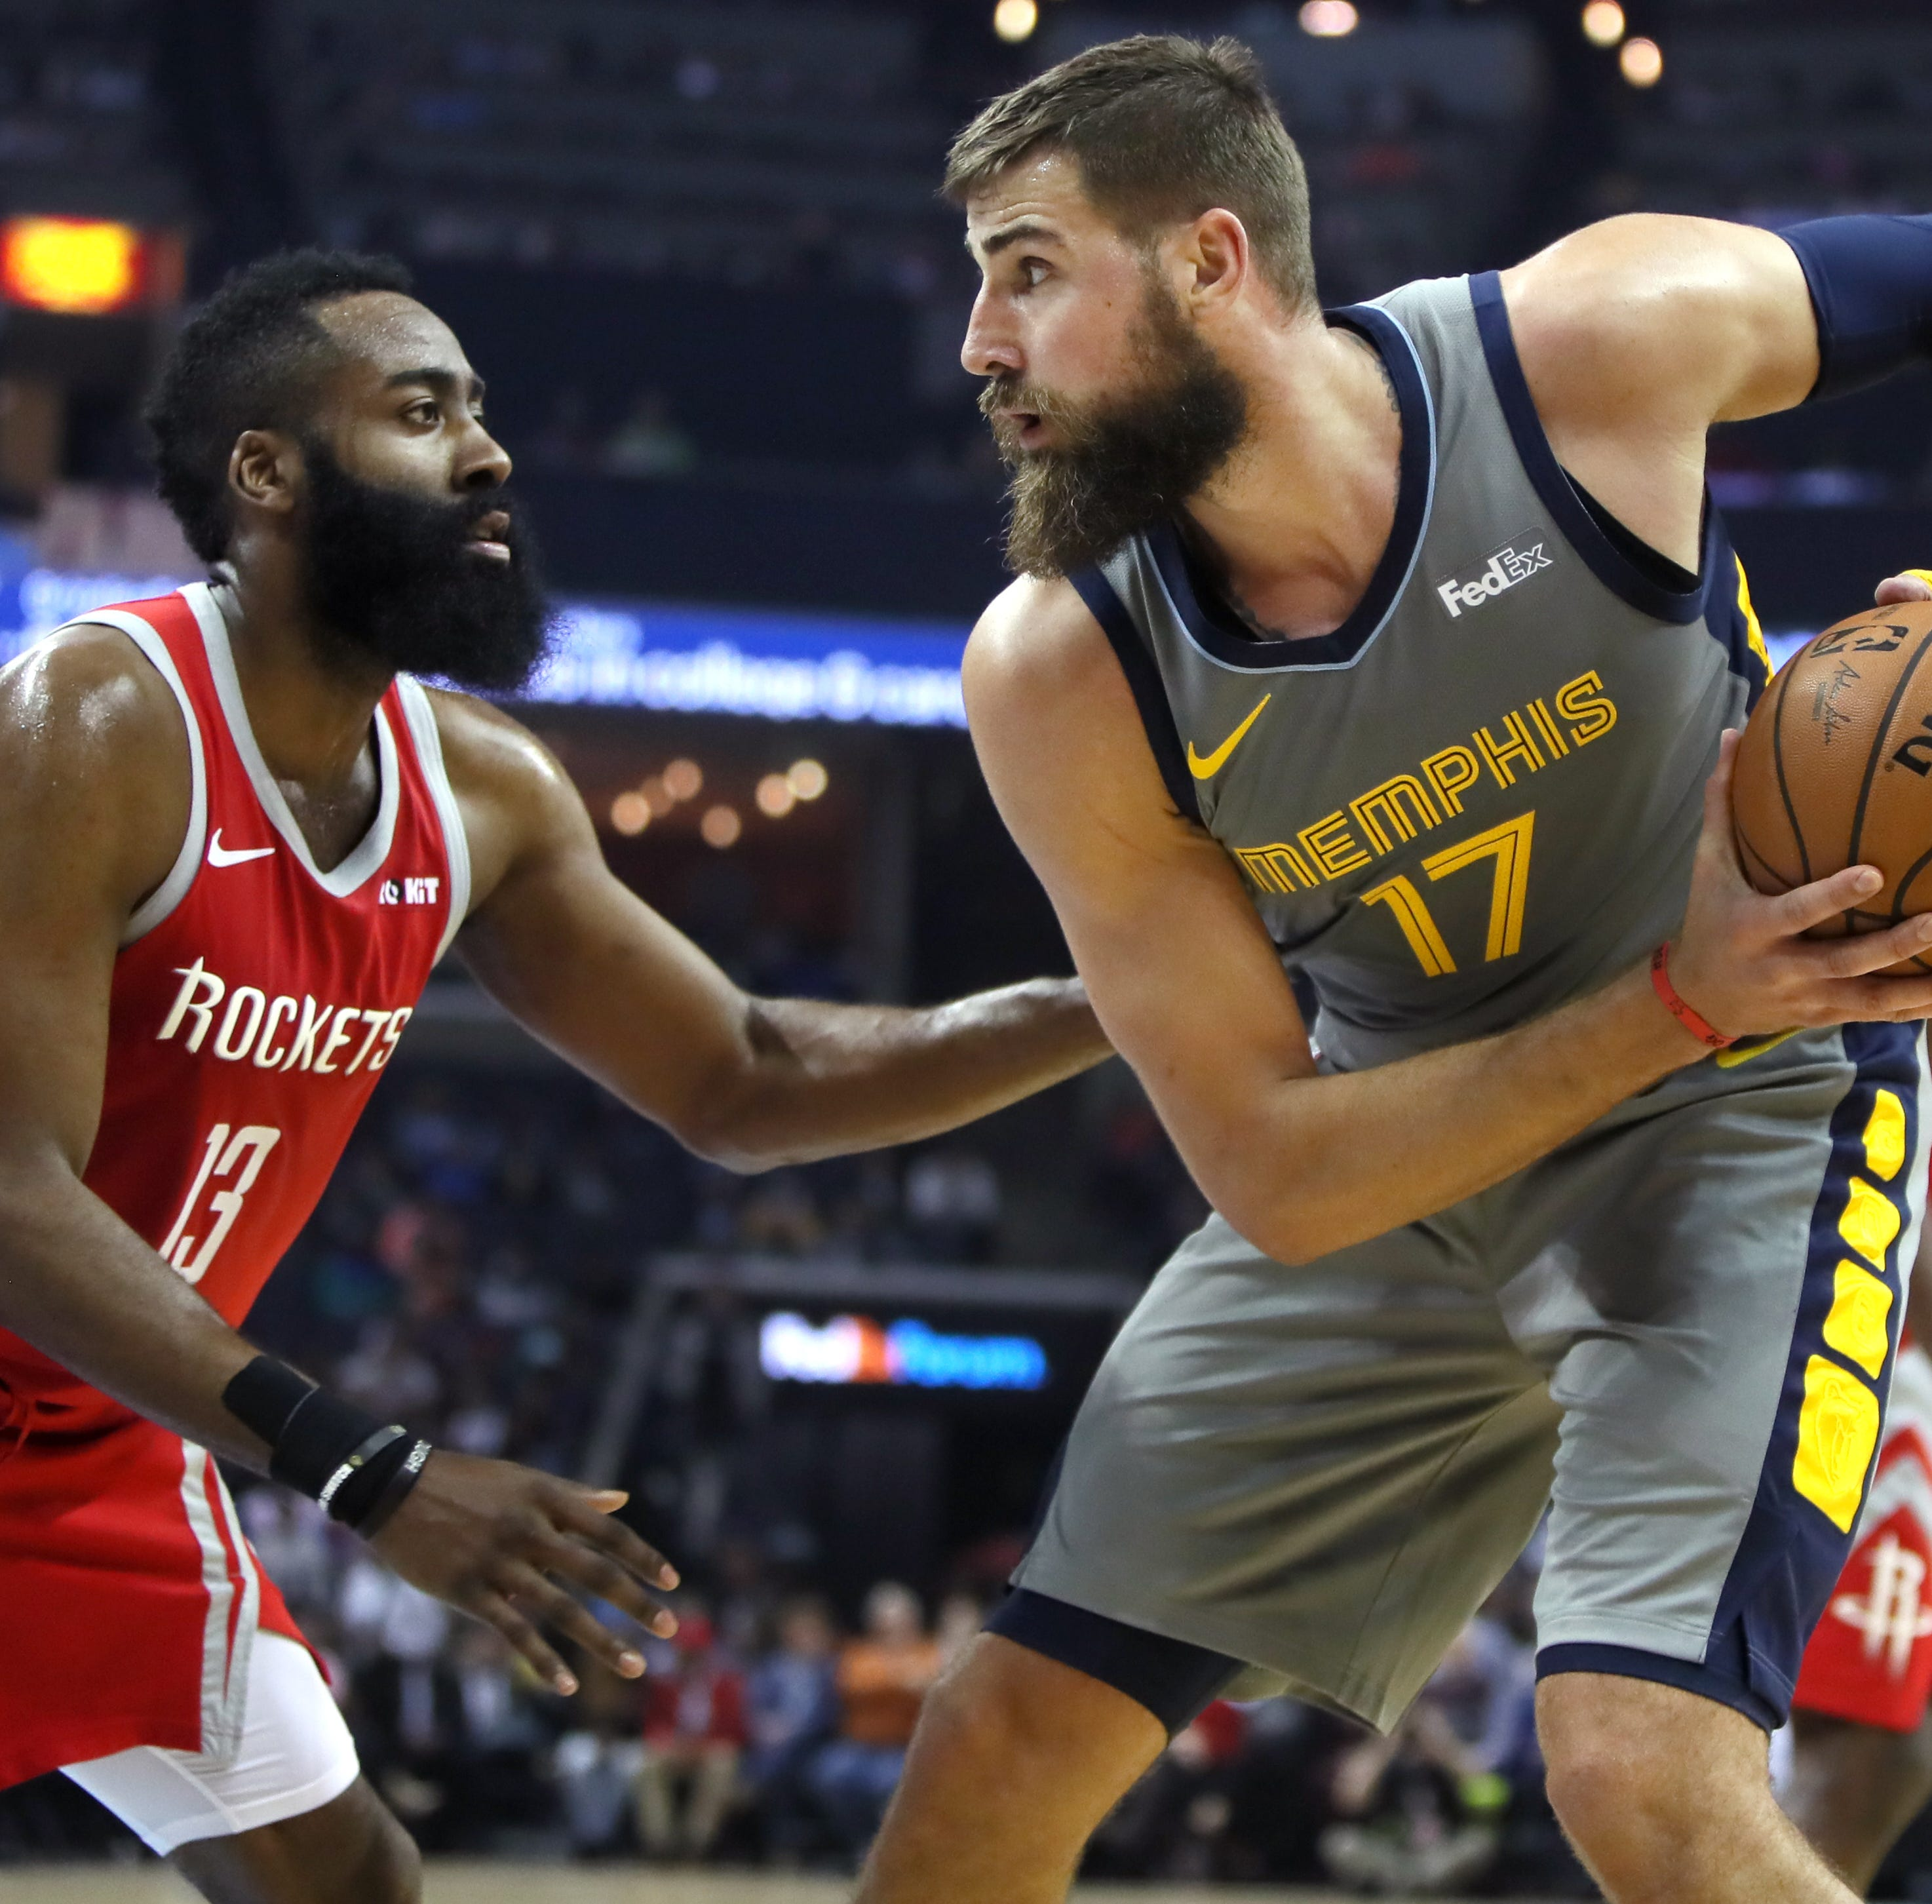 Jonas Valanciunas loved role with Grizzlies after Raptors trade